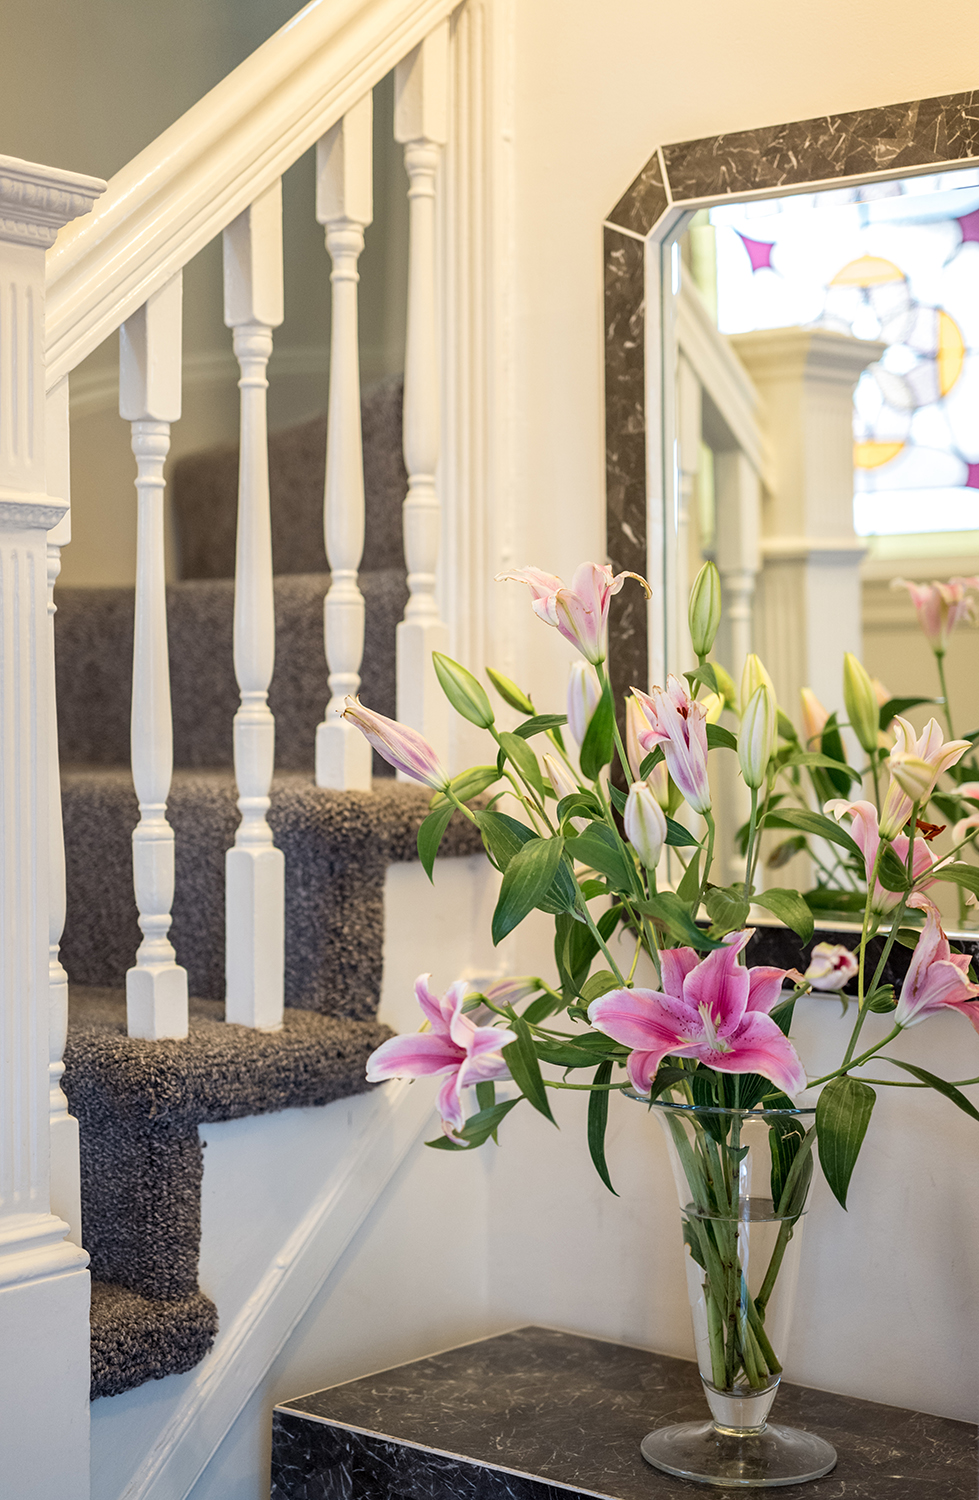 1500 - 110 Fayerweather Street lilies with stair.jpg